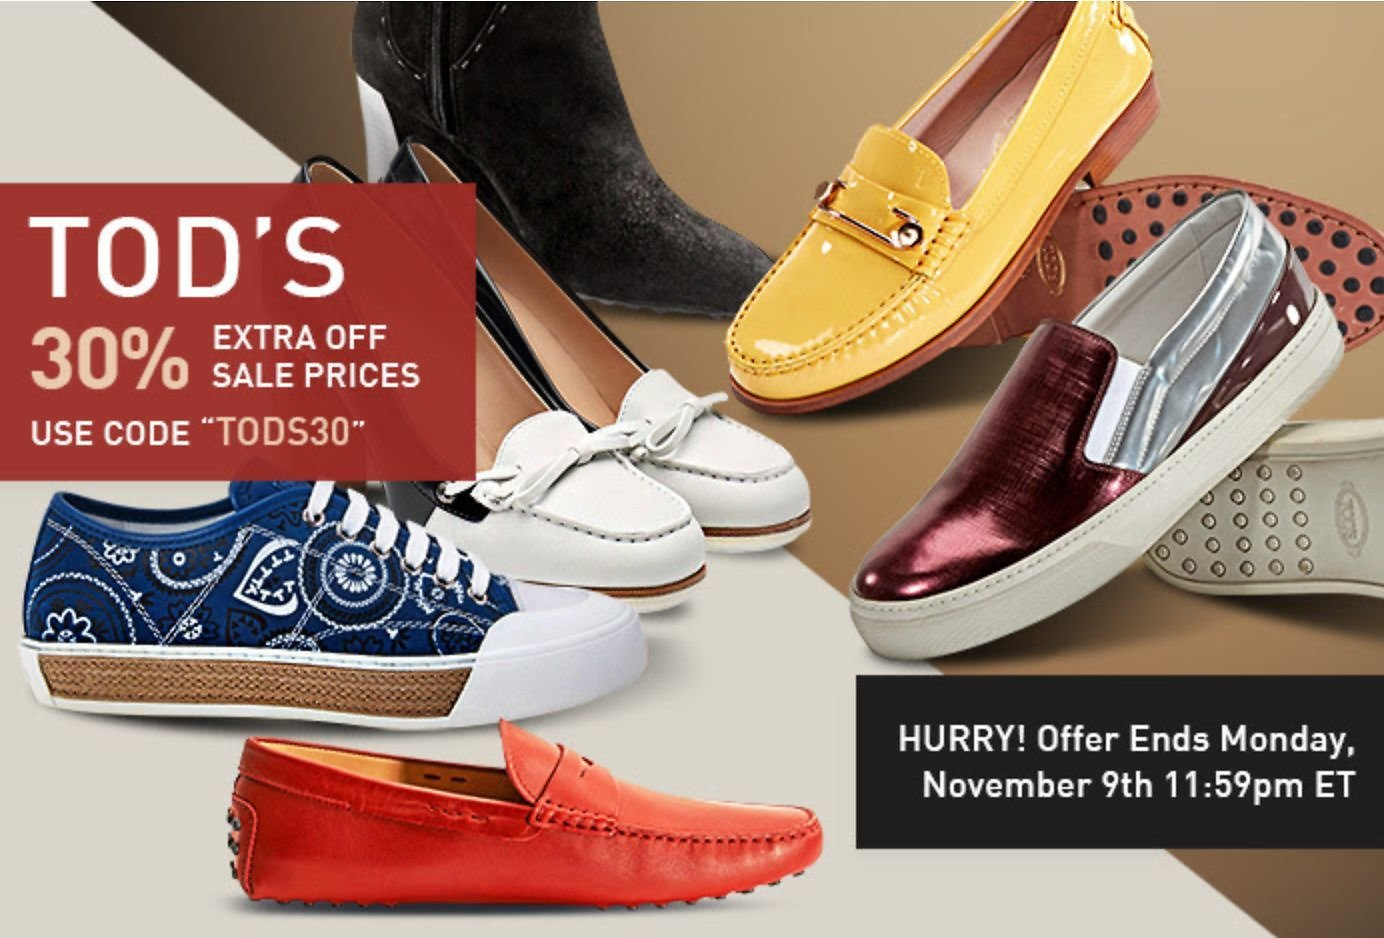 Extra 30% Off Sale Shoes Doorbuster Event